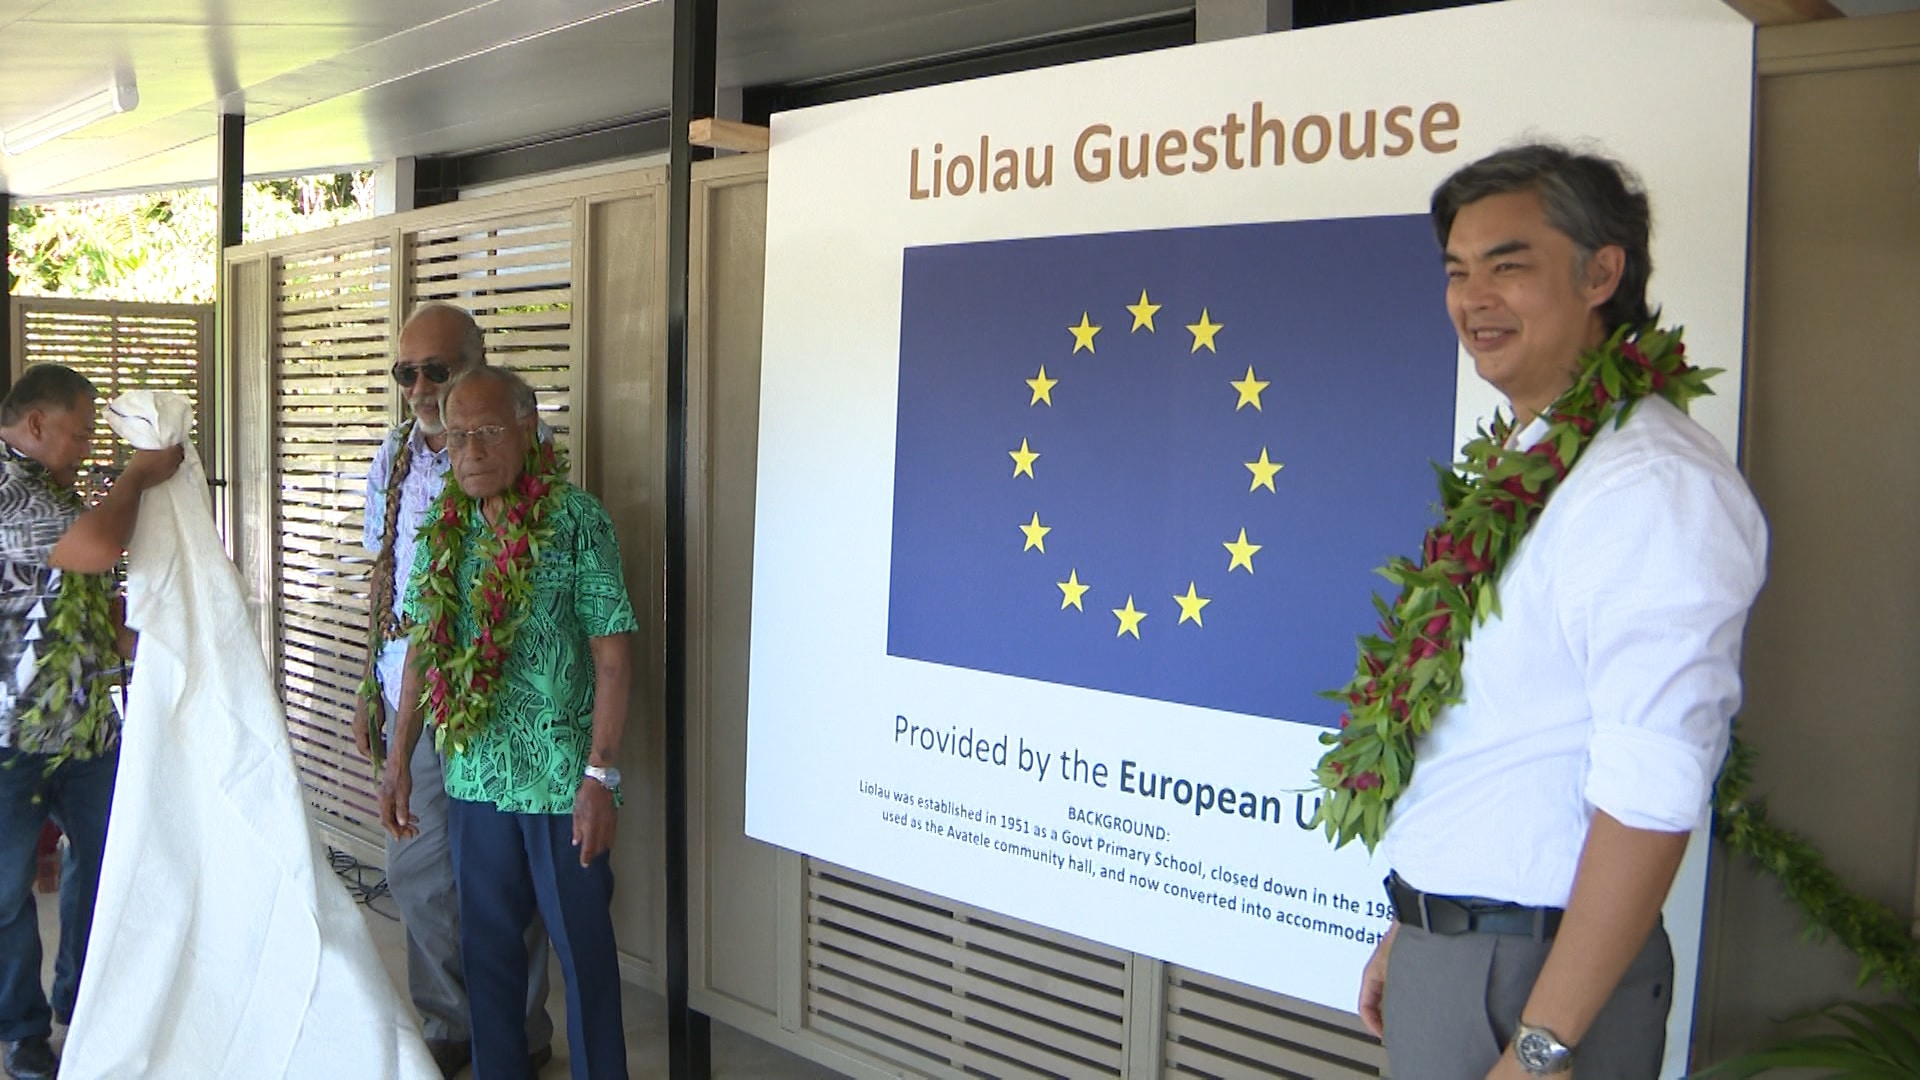 Members of the Avatele Community, Government dignitaries and the invited guests all gathered at Liolau for the official opening of the Liolau Guesthouse.   Performing his first duty as the Ambassador of…